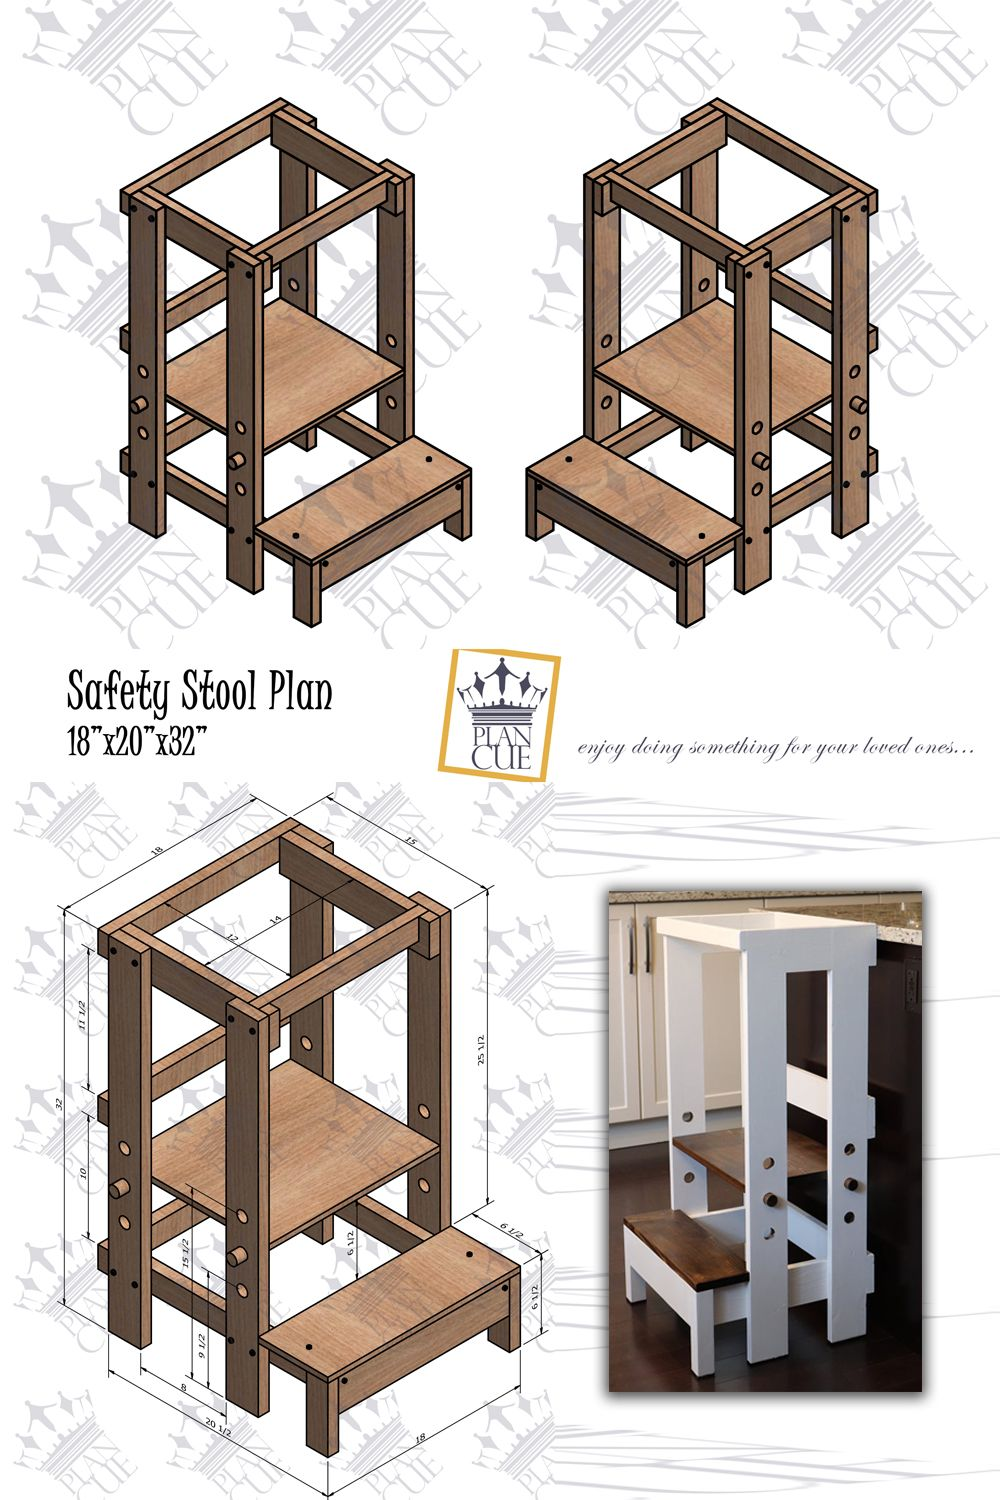 Toddler Step Stool Plan Montessori Learning Tower Wooden Helper Tower Diy Safety Stool Toddler Kitchen Stool Toddler Step Stool Toddler Kitchen